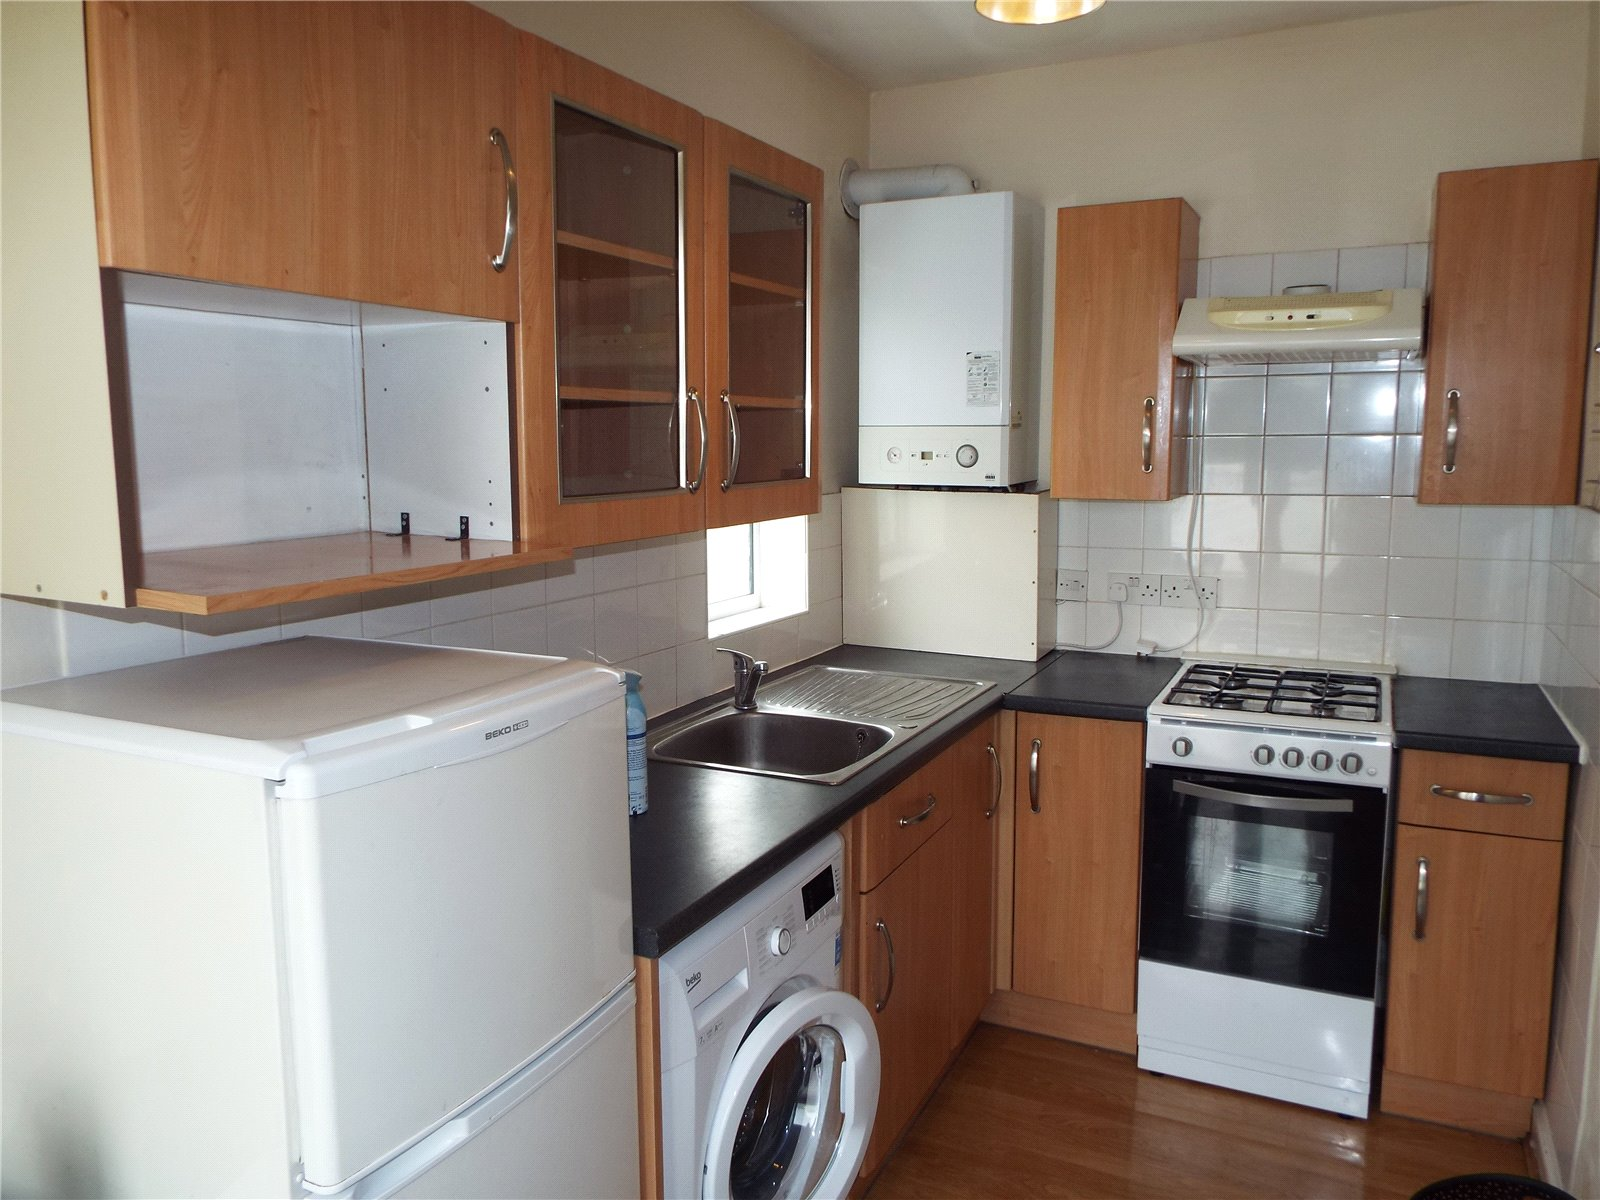 2 bed apartment to rent in Whetstone, N20 0BS 2